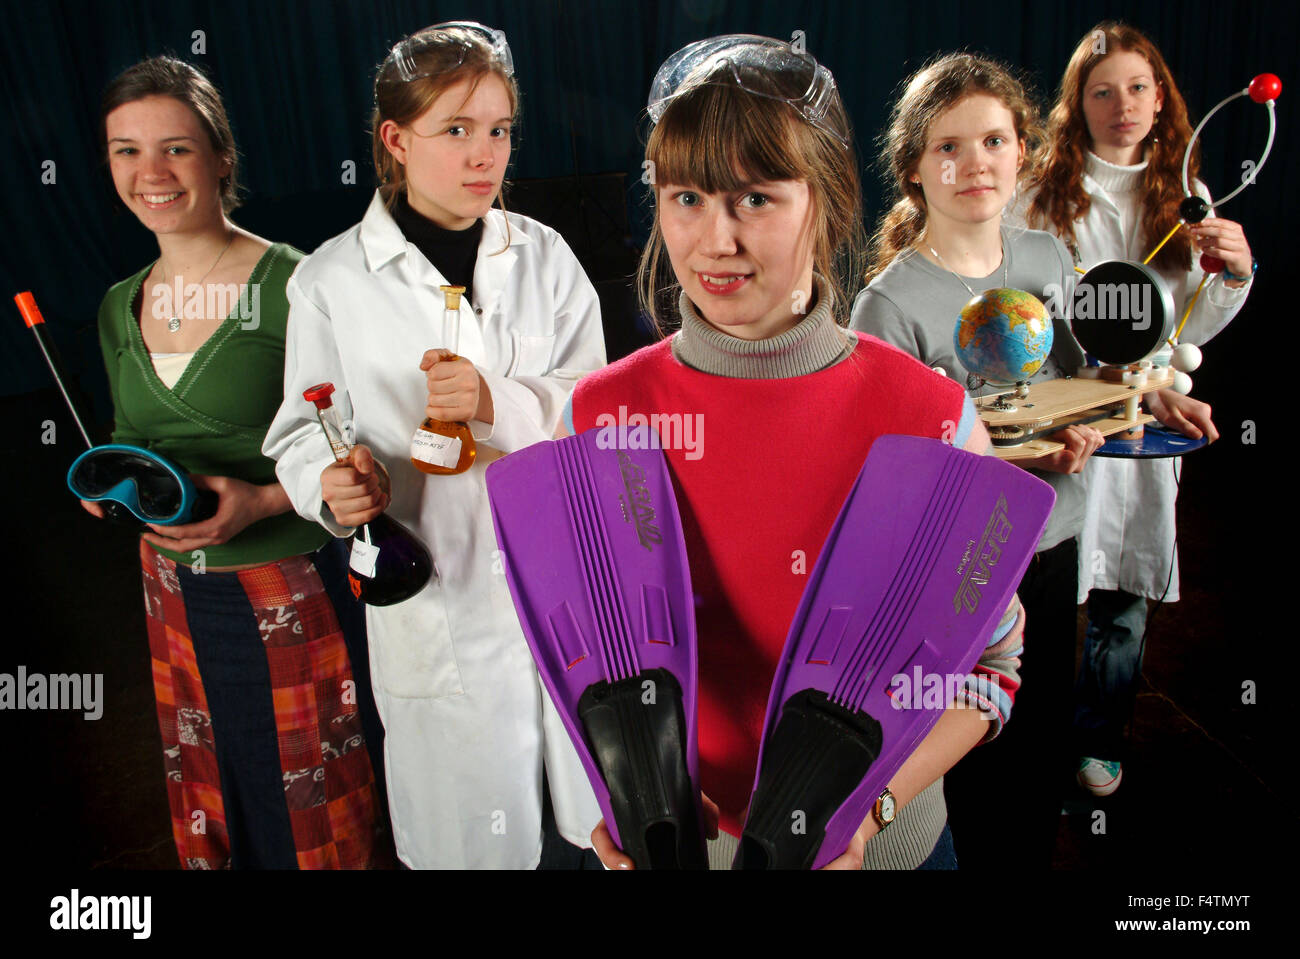 Five students at Rednock School,Dursley,Gloucestershire,UK,represent careers in chemistry,travel,sport,geography - Stock Image